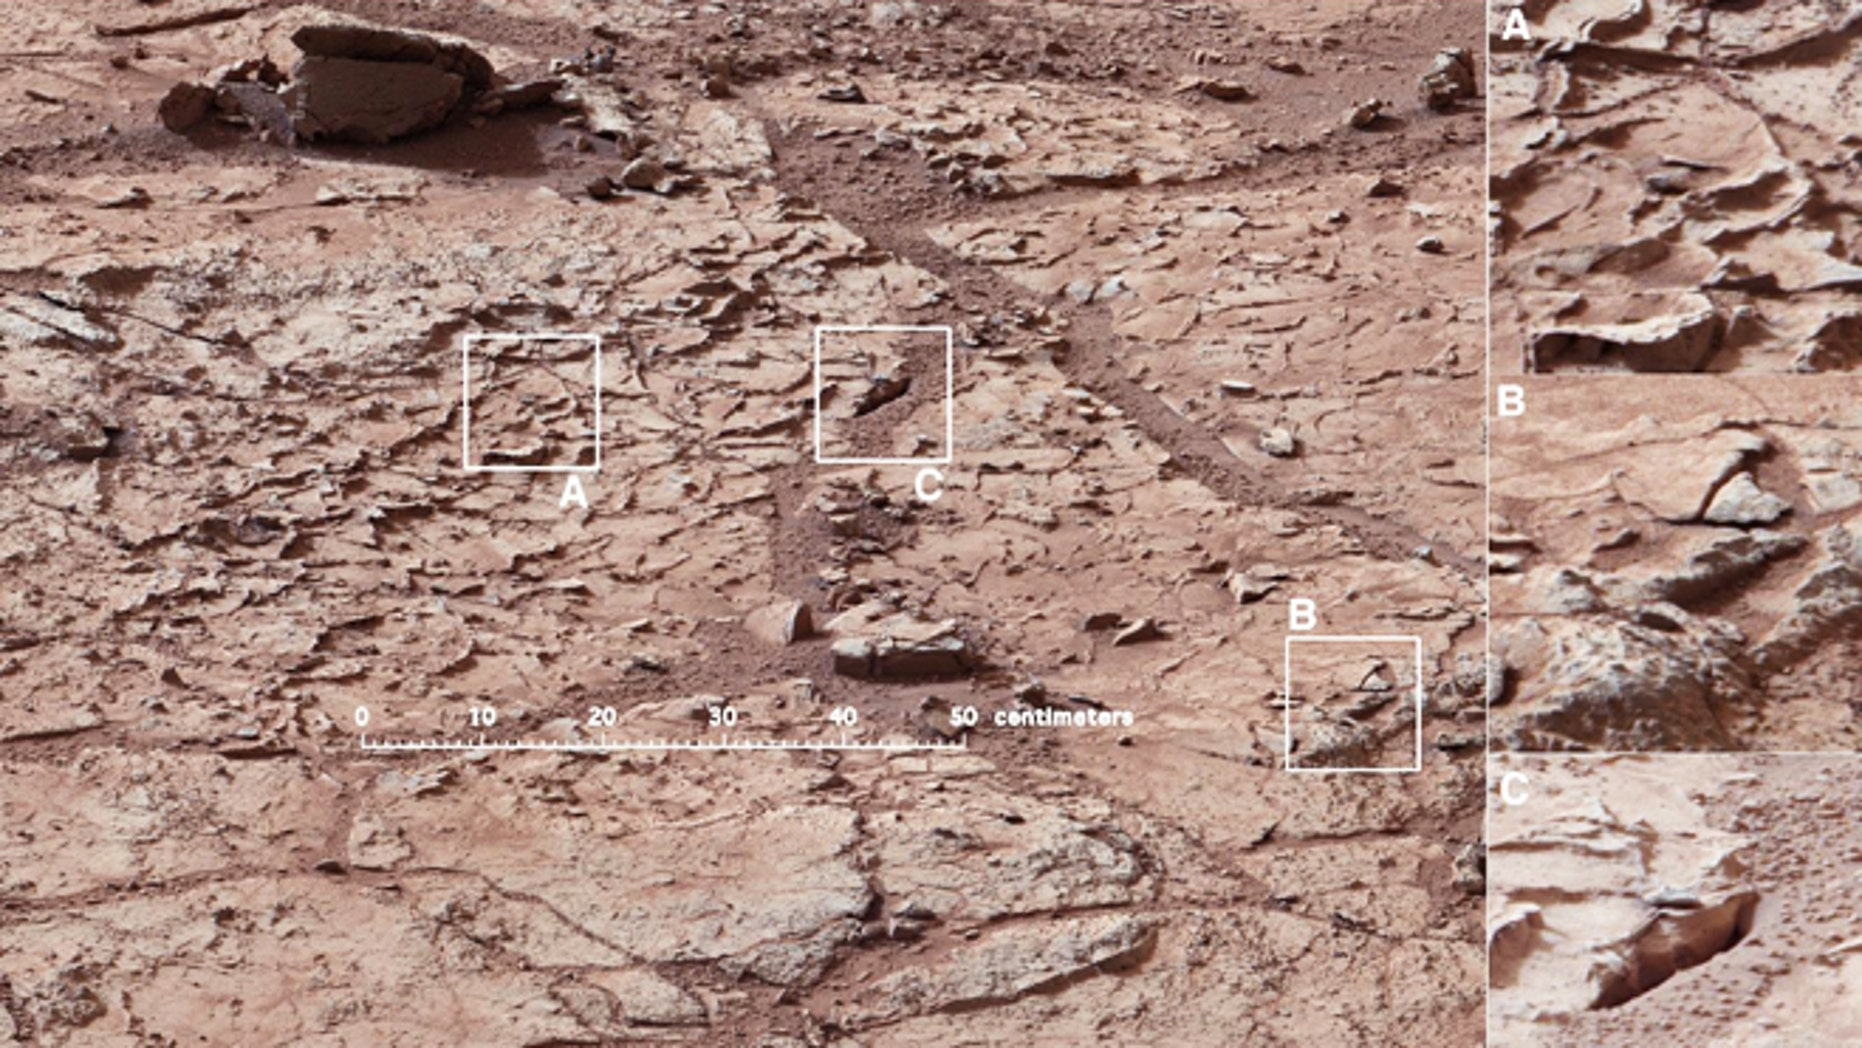 Jan. 10, 2013: The patch of veined, flat-lying rock selected as the first drilling site for NASA's Mars rover Curiosity. The area is shot full of fractures and veins, with the intervening rock also containing concretions, which are small spherical concentrations of minerals. At right, three boxes, each about 4 inches across, designate enlargements on the right that illustrate attributes of the area.